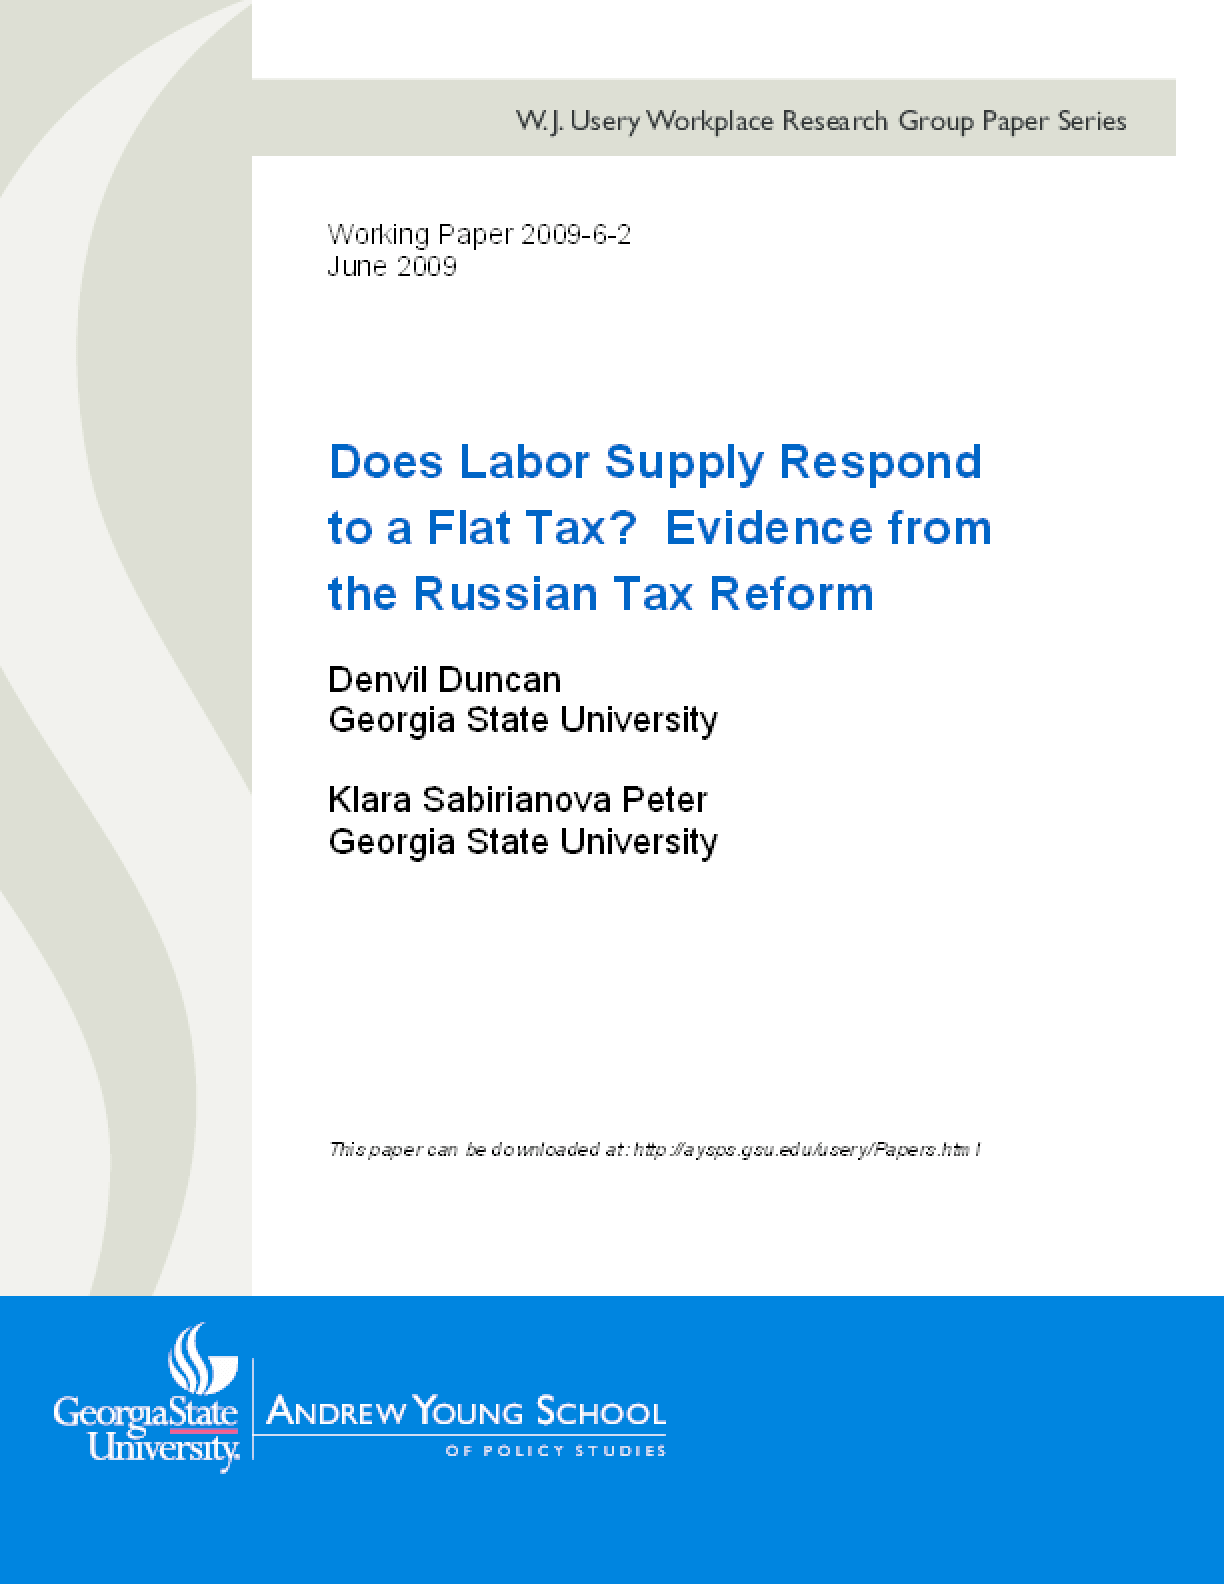 Does Labor Supply Respond to a Flat Tax? Evidence from the Russian Tax Reform